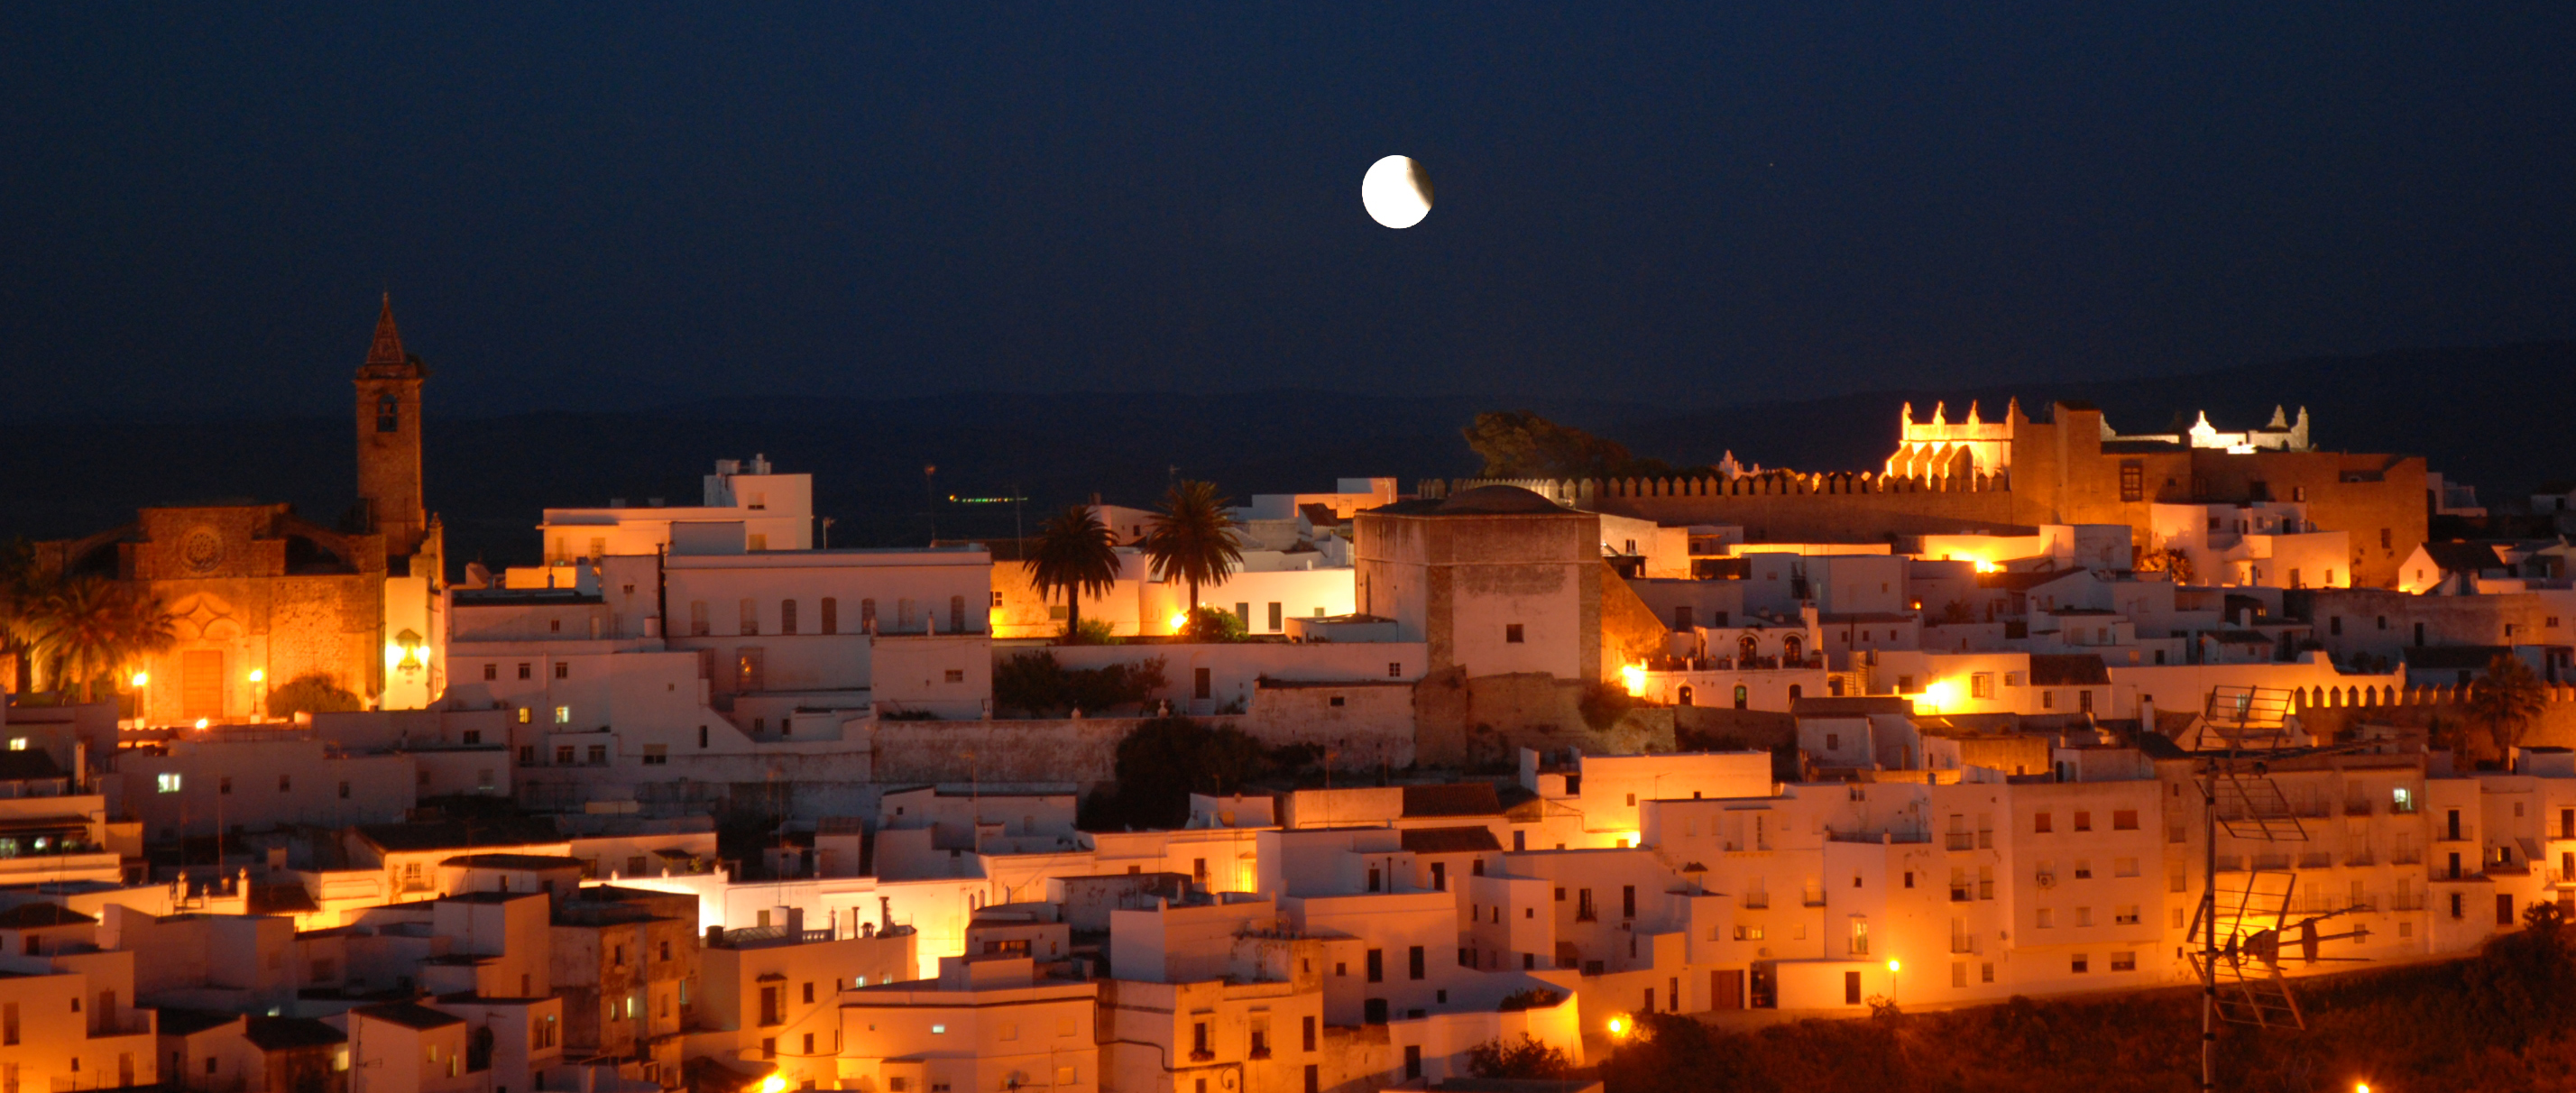 vejer_noche